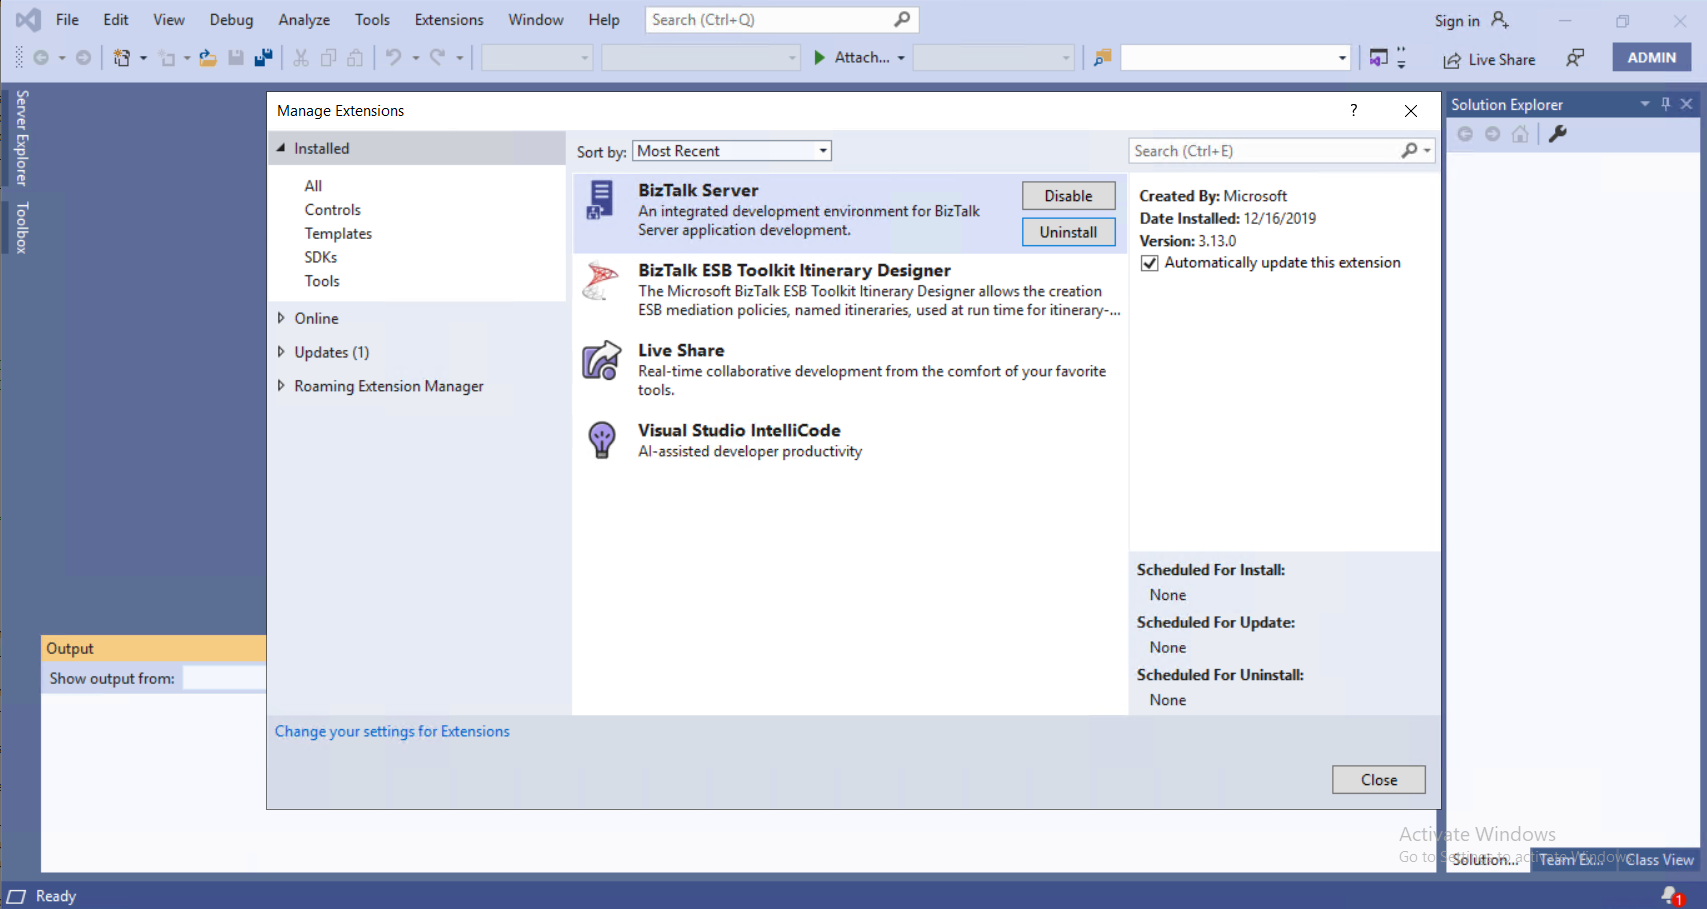 Install the BizTalk Server extension to use the developer tools